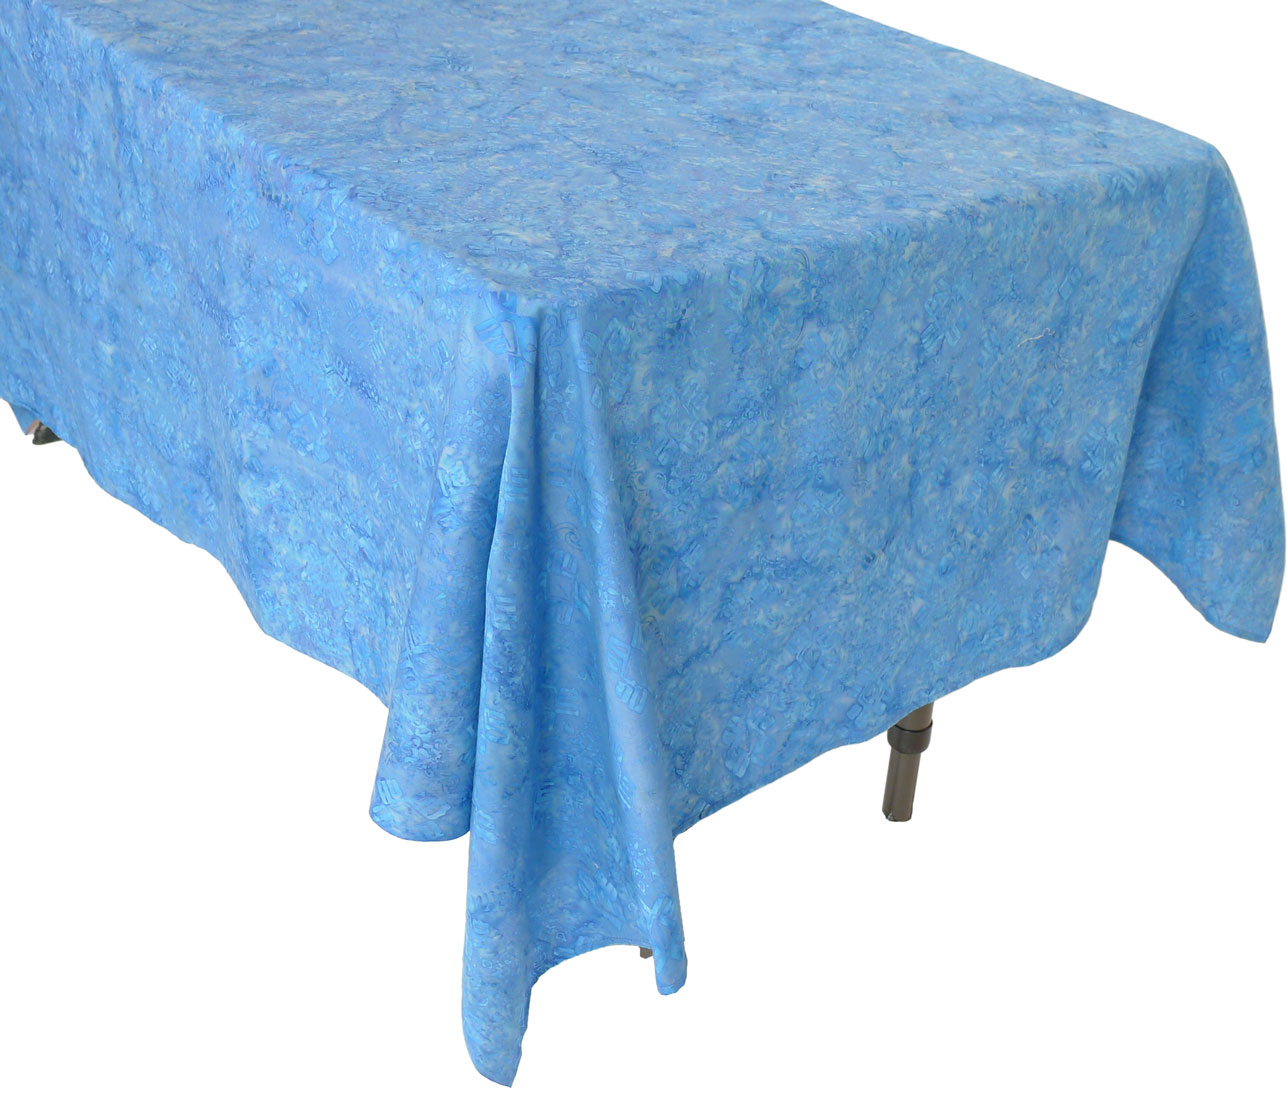 Squish blue diamond coffee table tablecloth Coffee table tablecloth